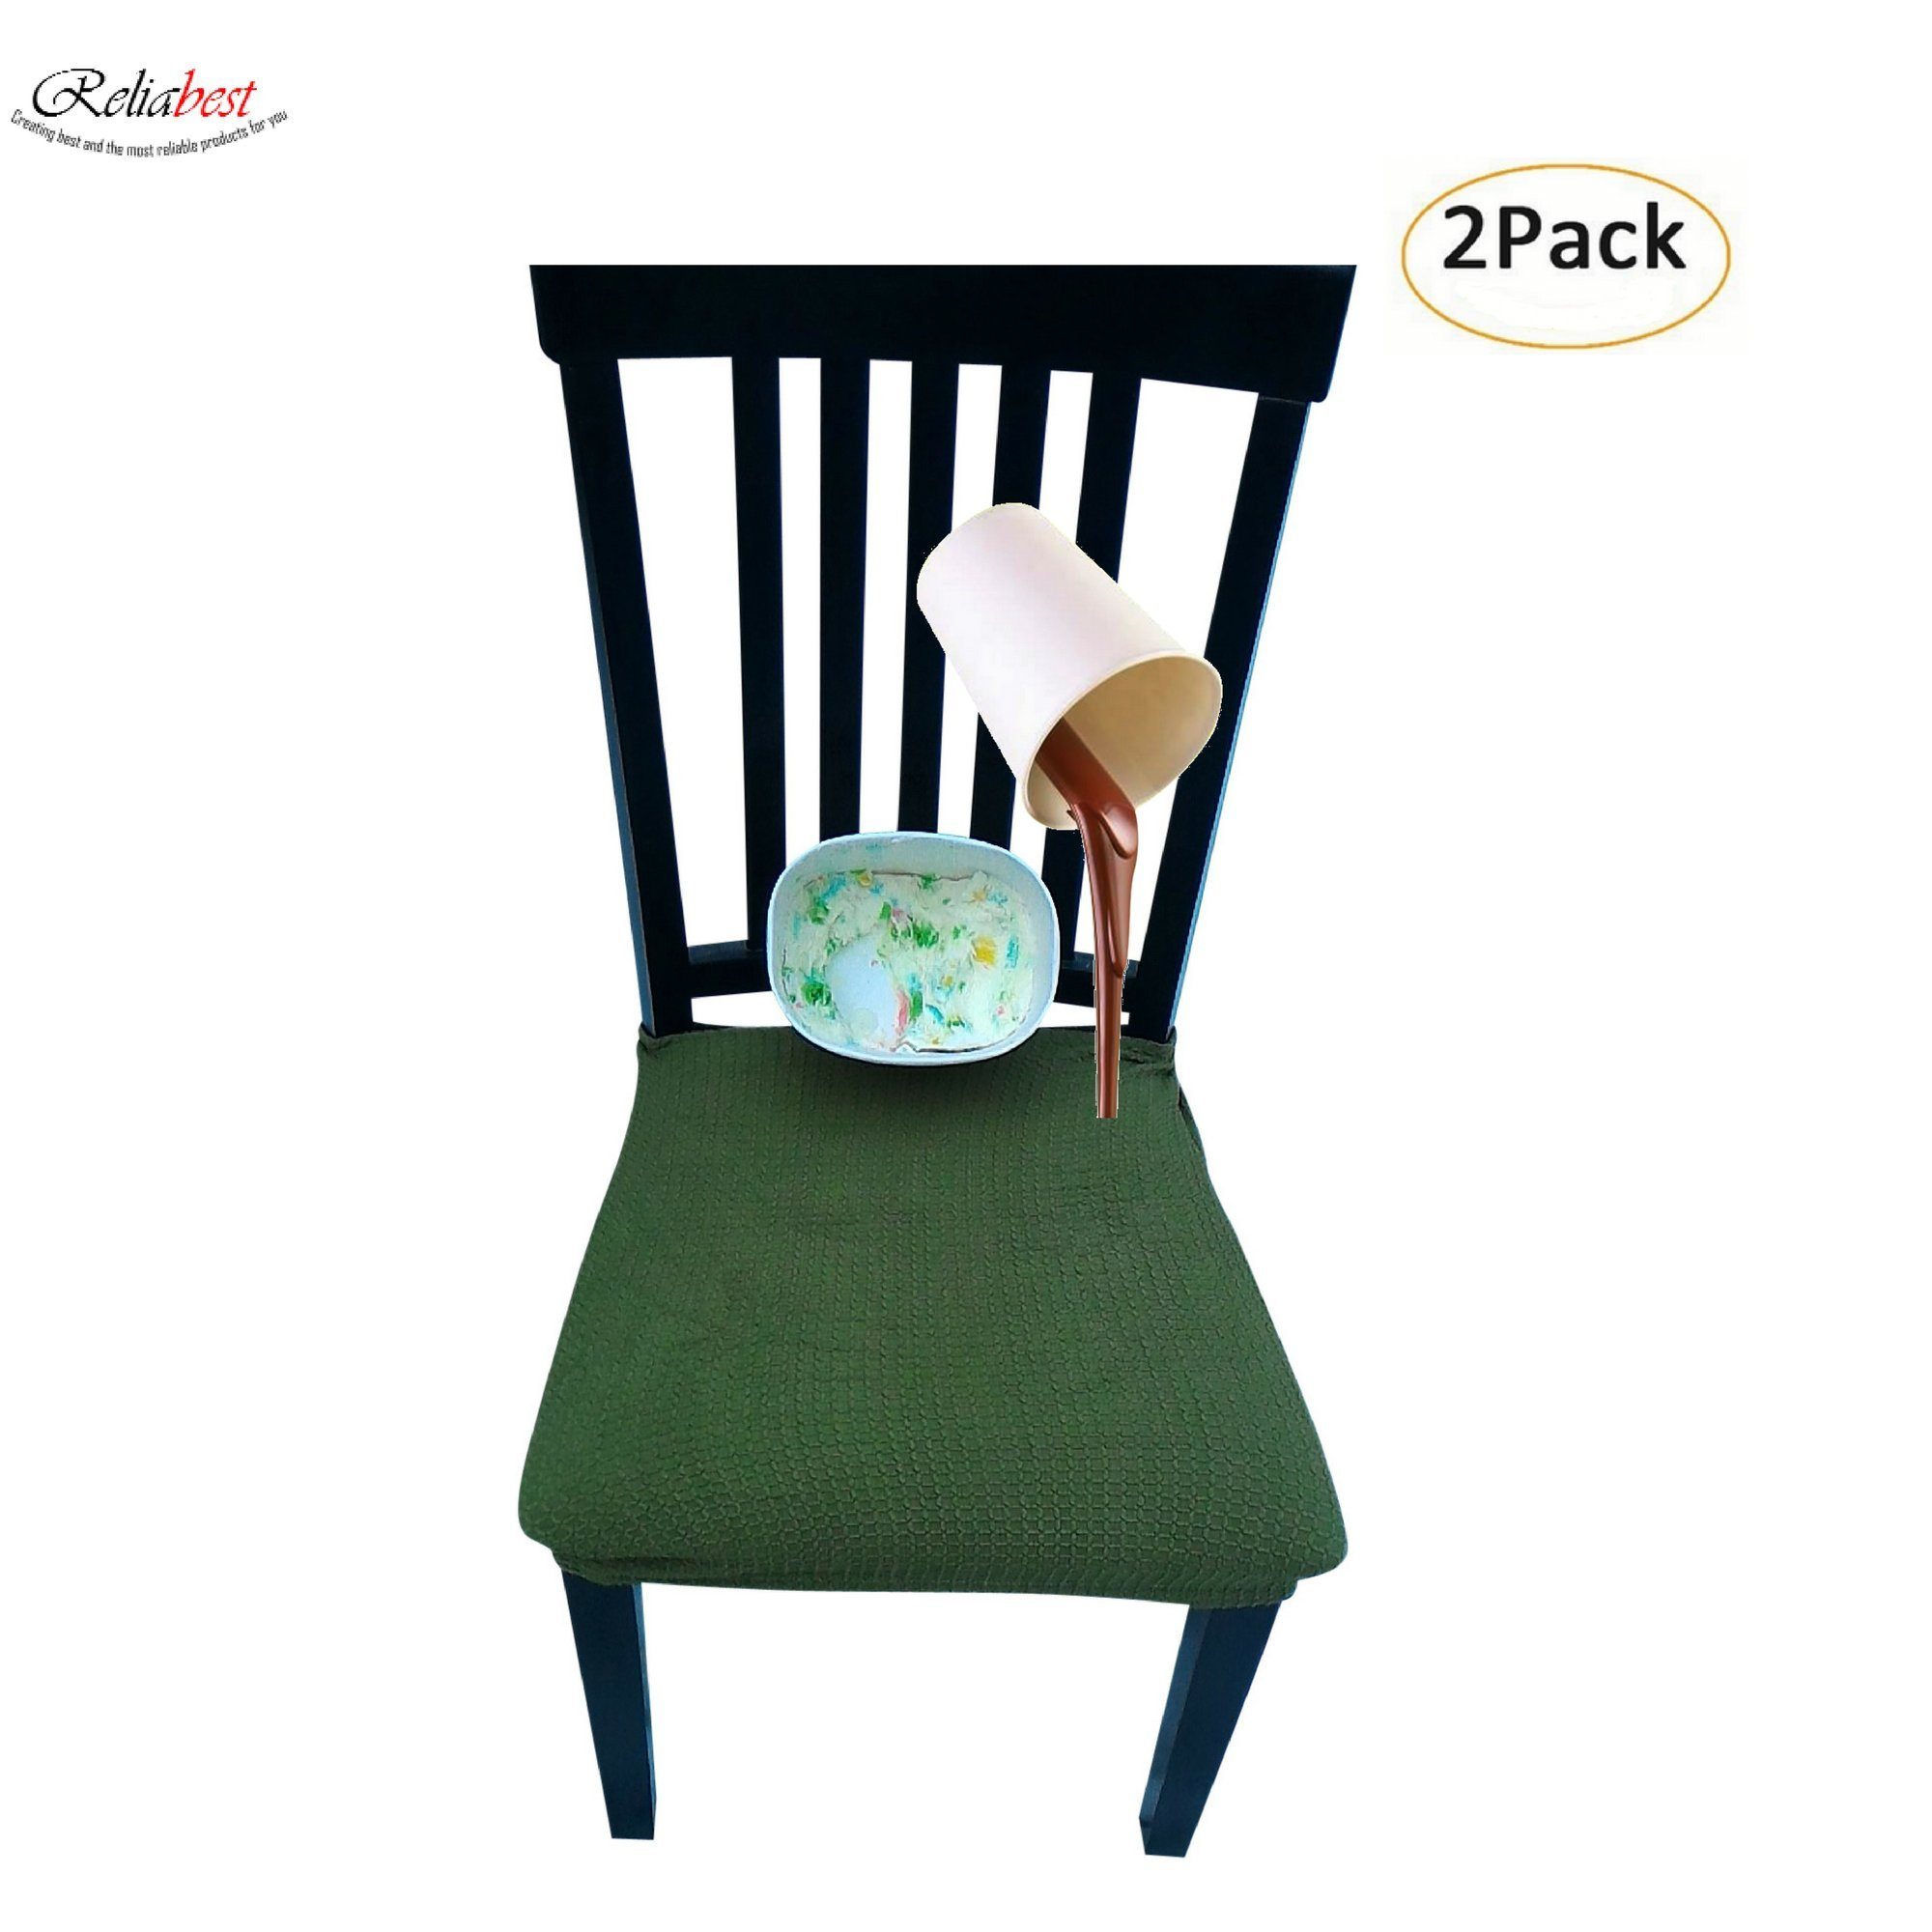 Waterproof Dining Chair Cover Protector - Pack of 2 - Perfect For Pets, Kids, Elderly, Wedding, Party - Machine Washable, Elastic, Removable, Premium Quality, Clean the Mess Easily (dark green)